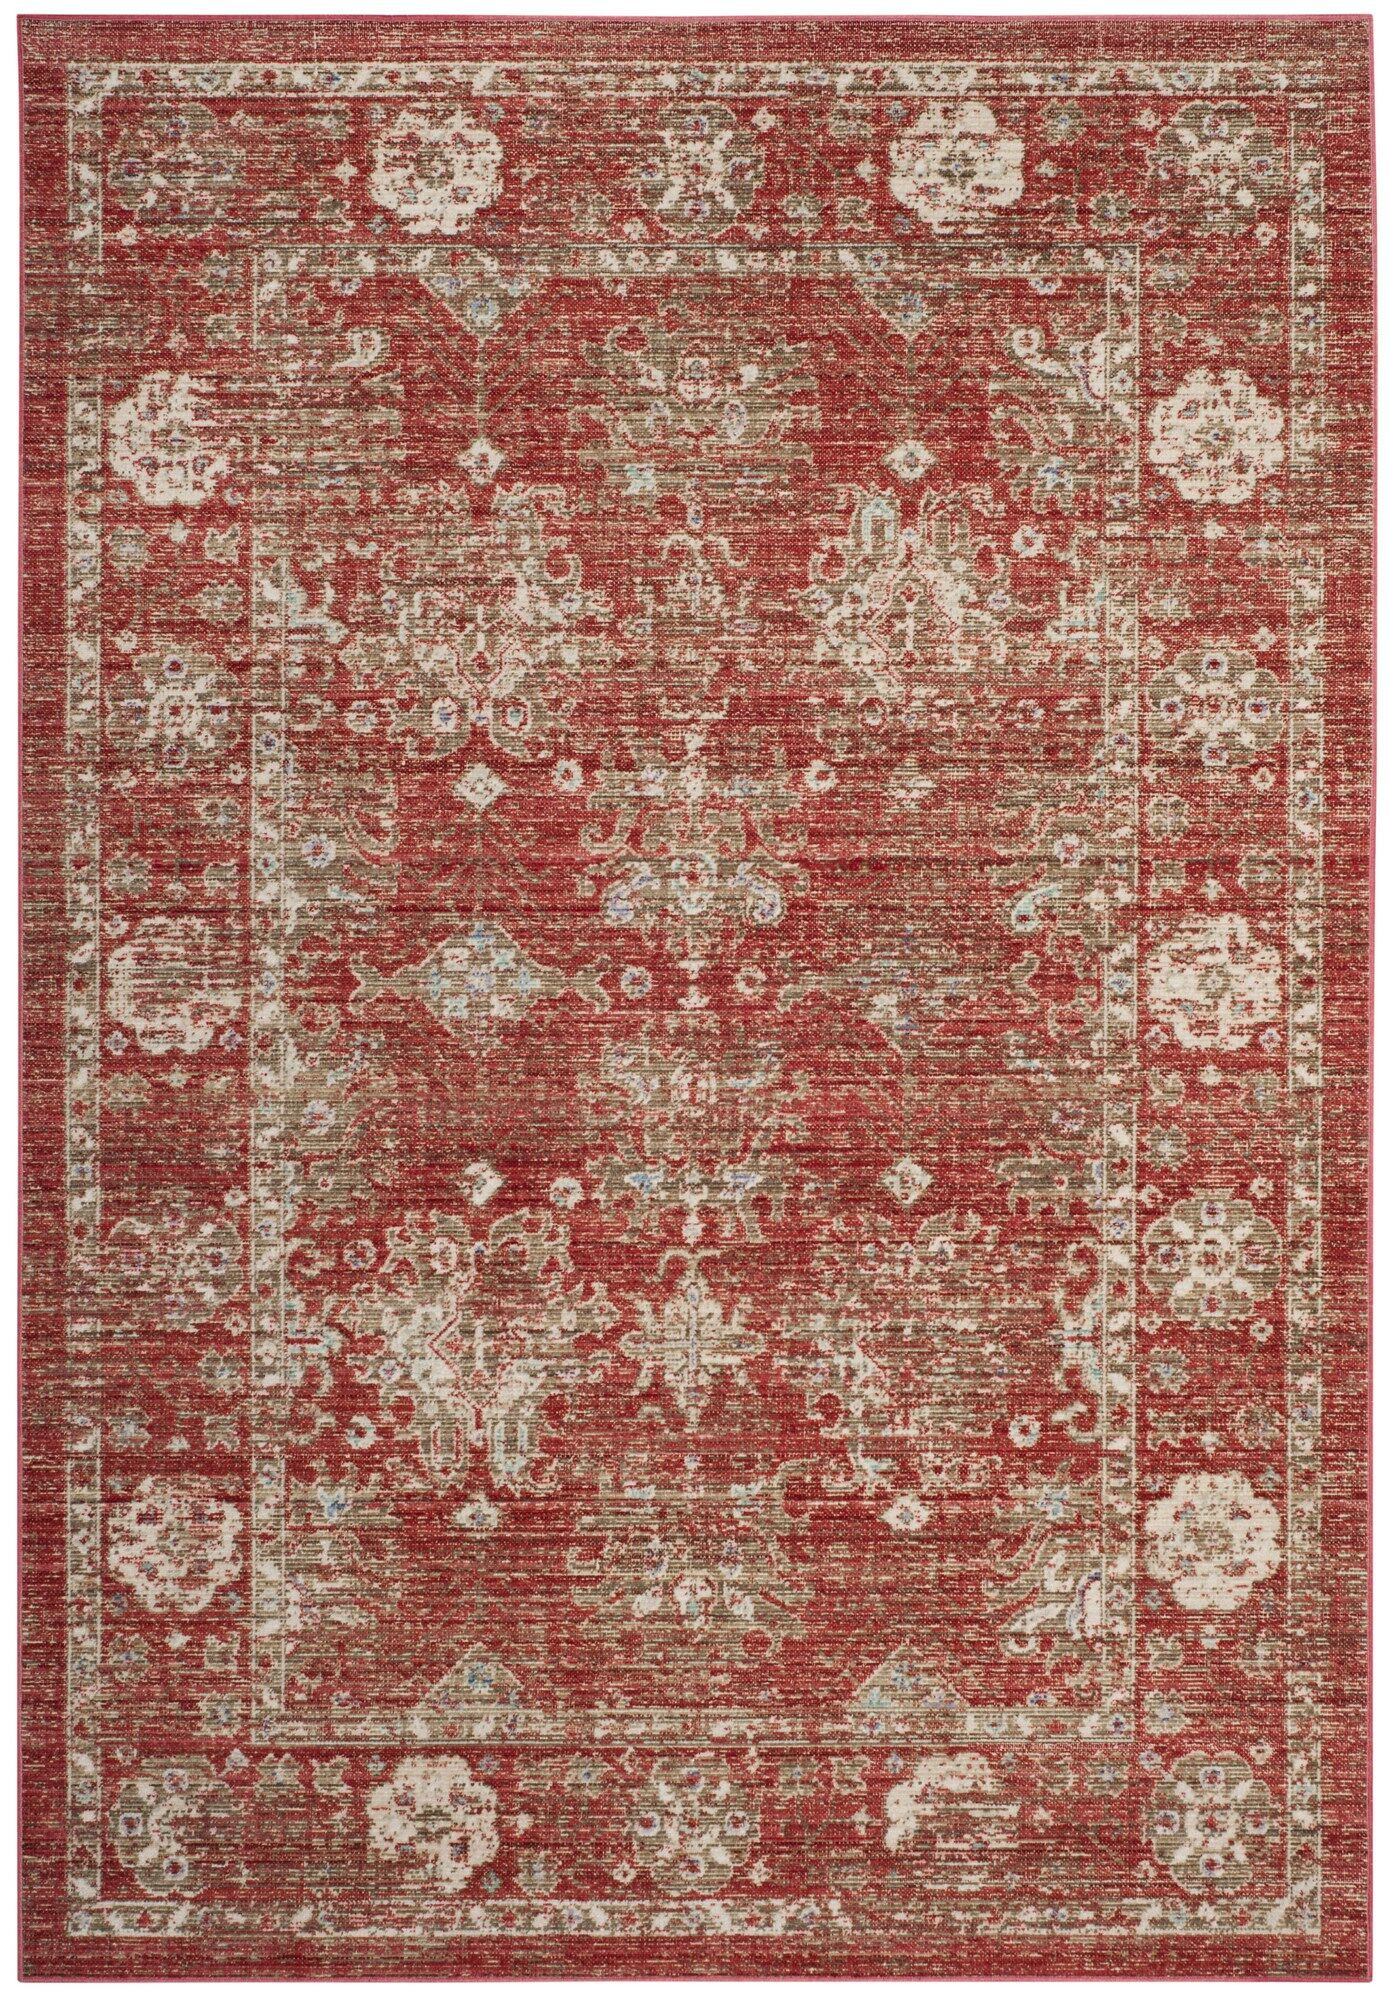 Chauncey Red Area Rug Rug Size: Rectangle 9' x 13'